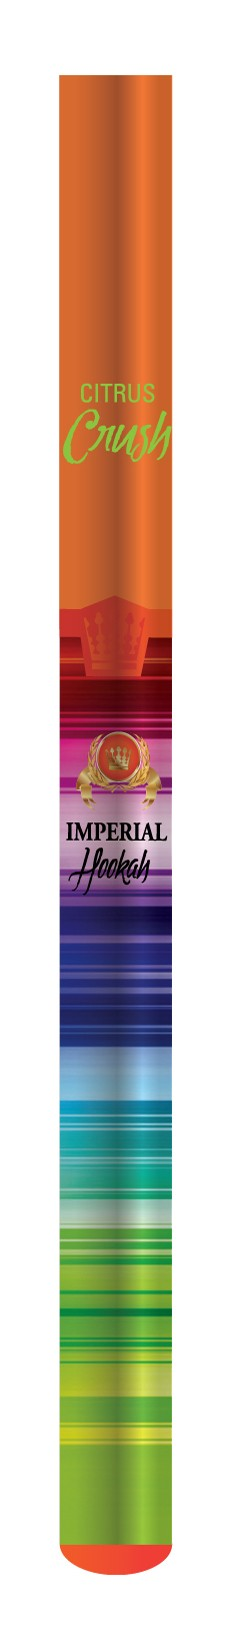 Imperial Hookah: Citrus Crush : Portable Hookah Stick